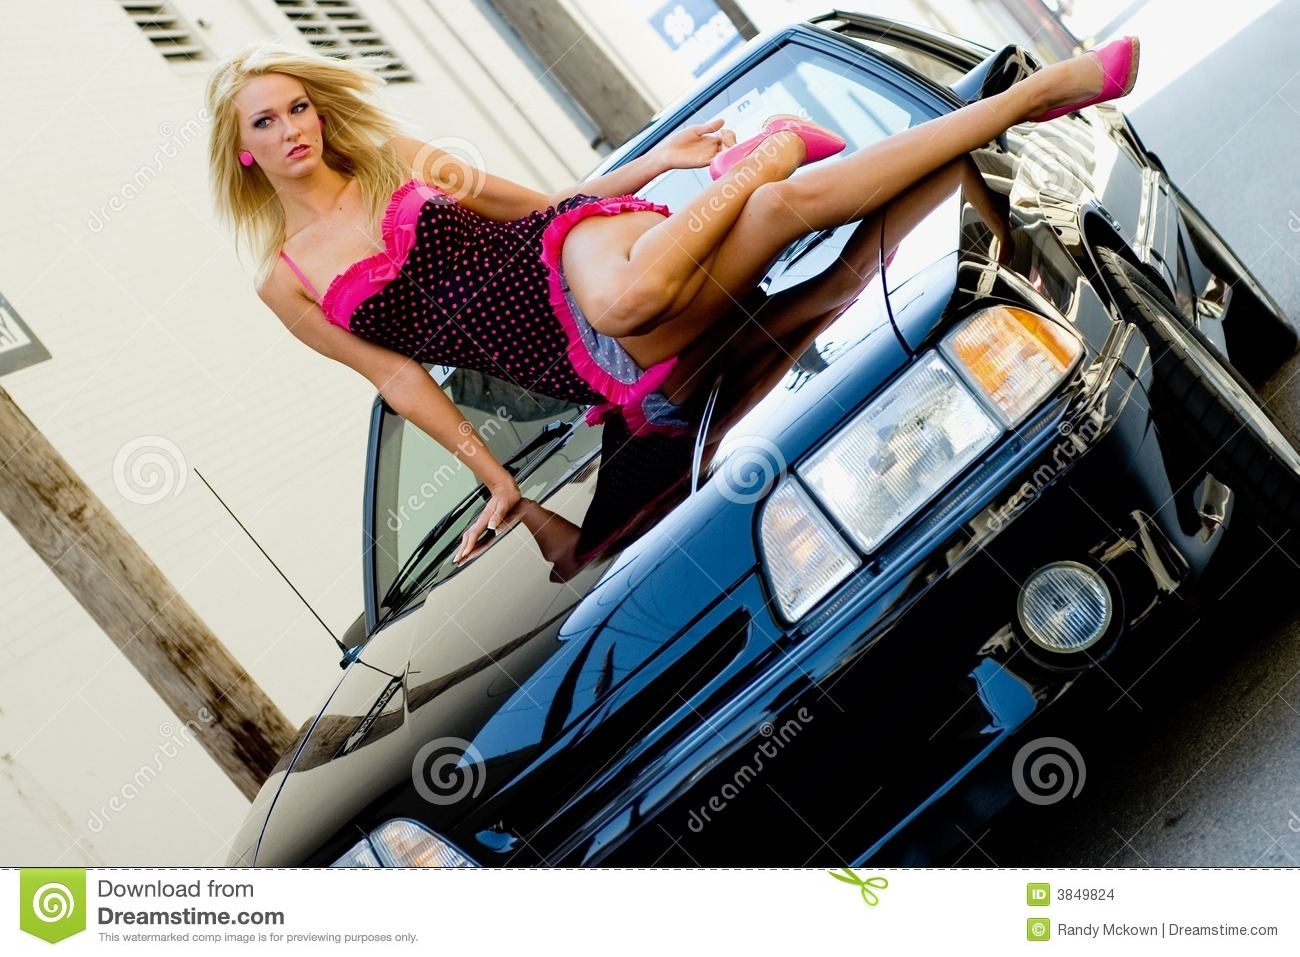 Can nude girl with sports car excited too